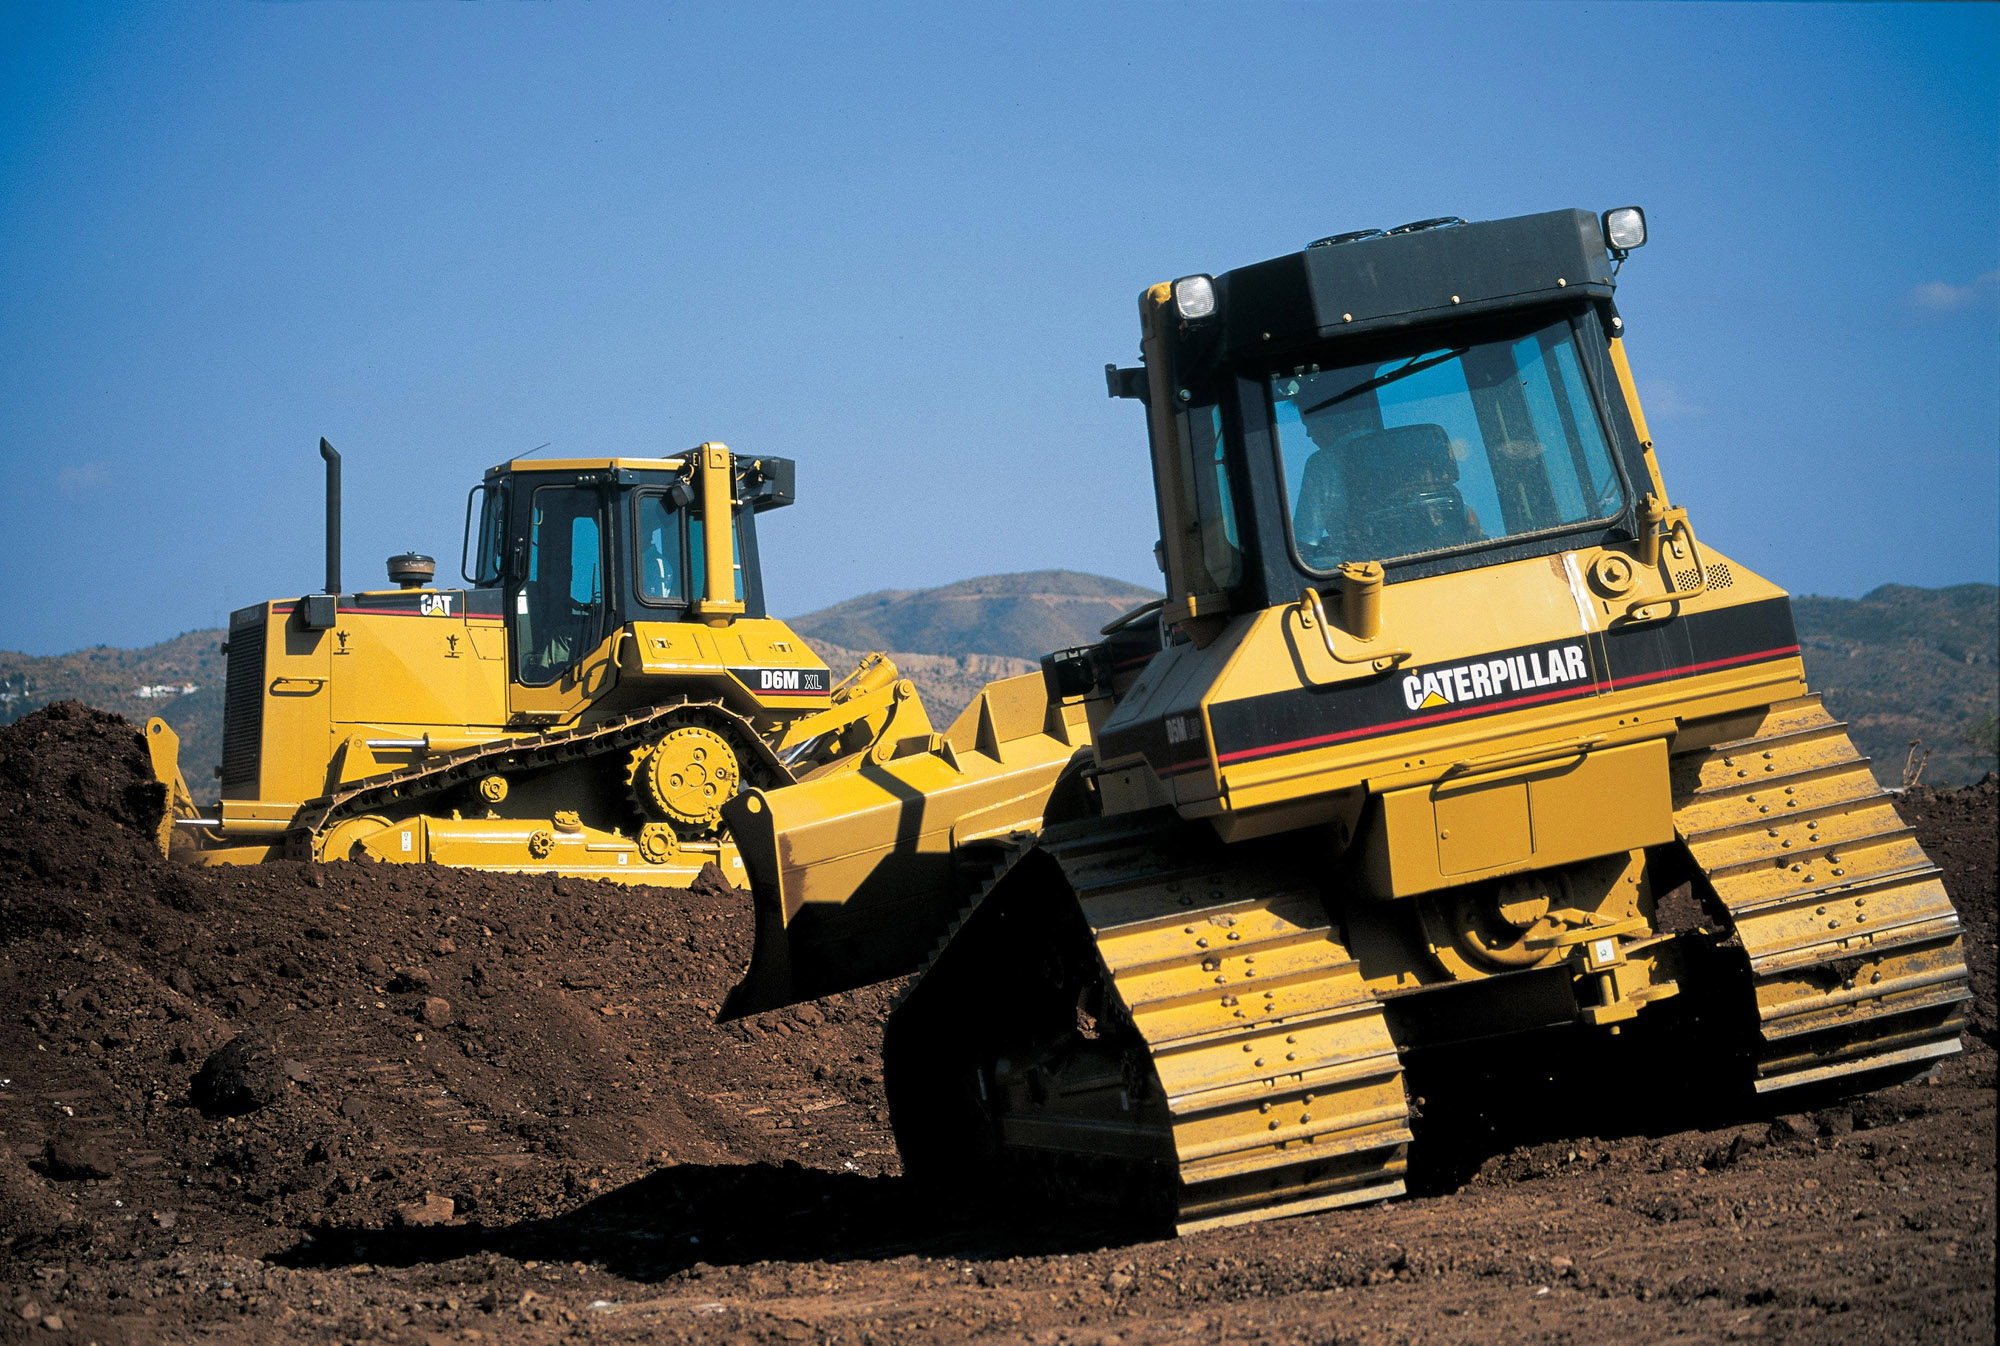 Caterpillar d5 photo - 3